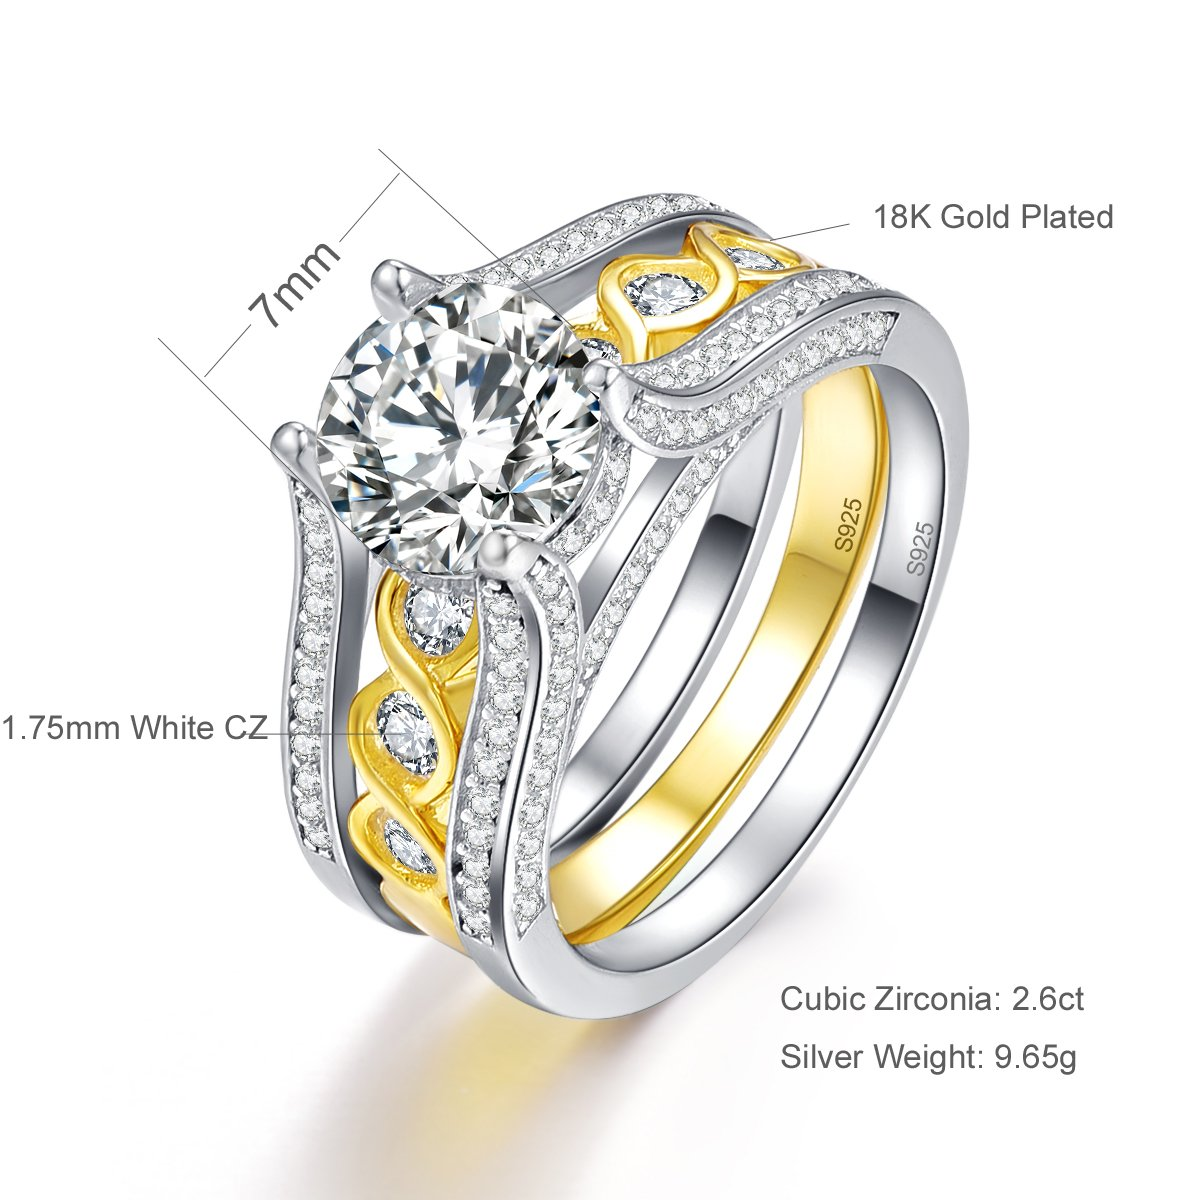 1d2a06d79 Amazon.com: BONLAVIE 2.6 Ct Infinity Cubic Zirconia 18K Gold Plated 925  Sterling Silver Wedding Band Engagement Ring Set: Jewelry